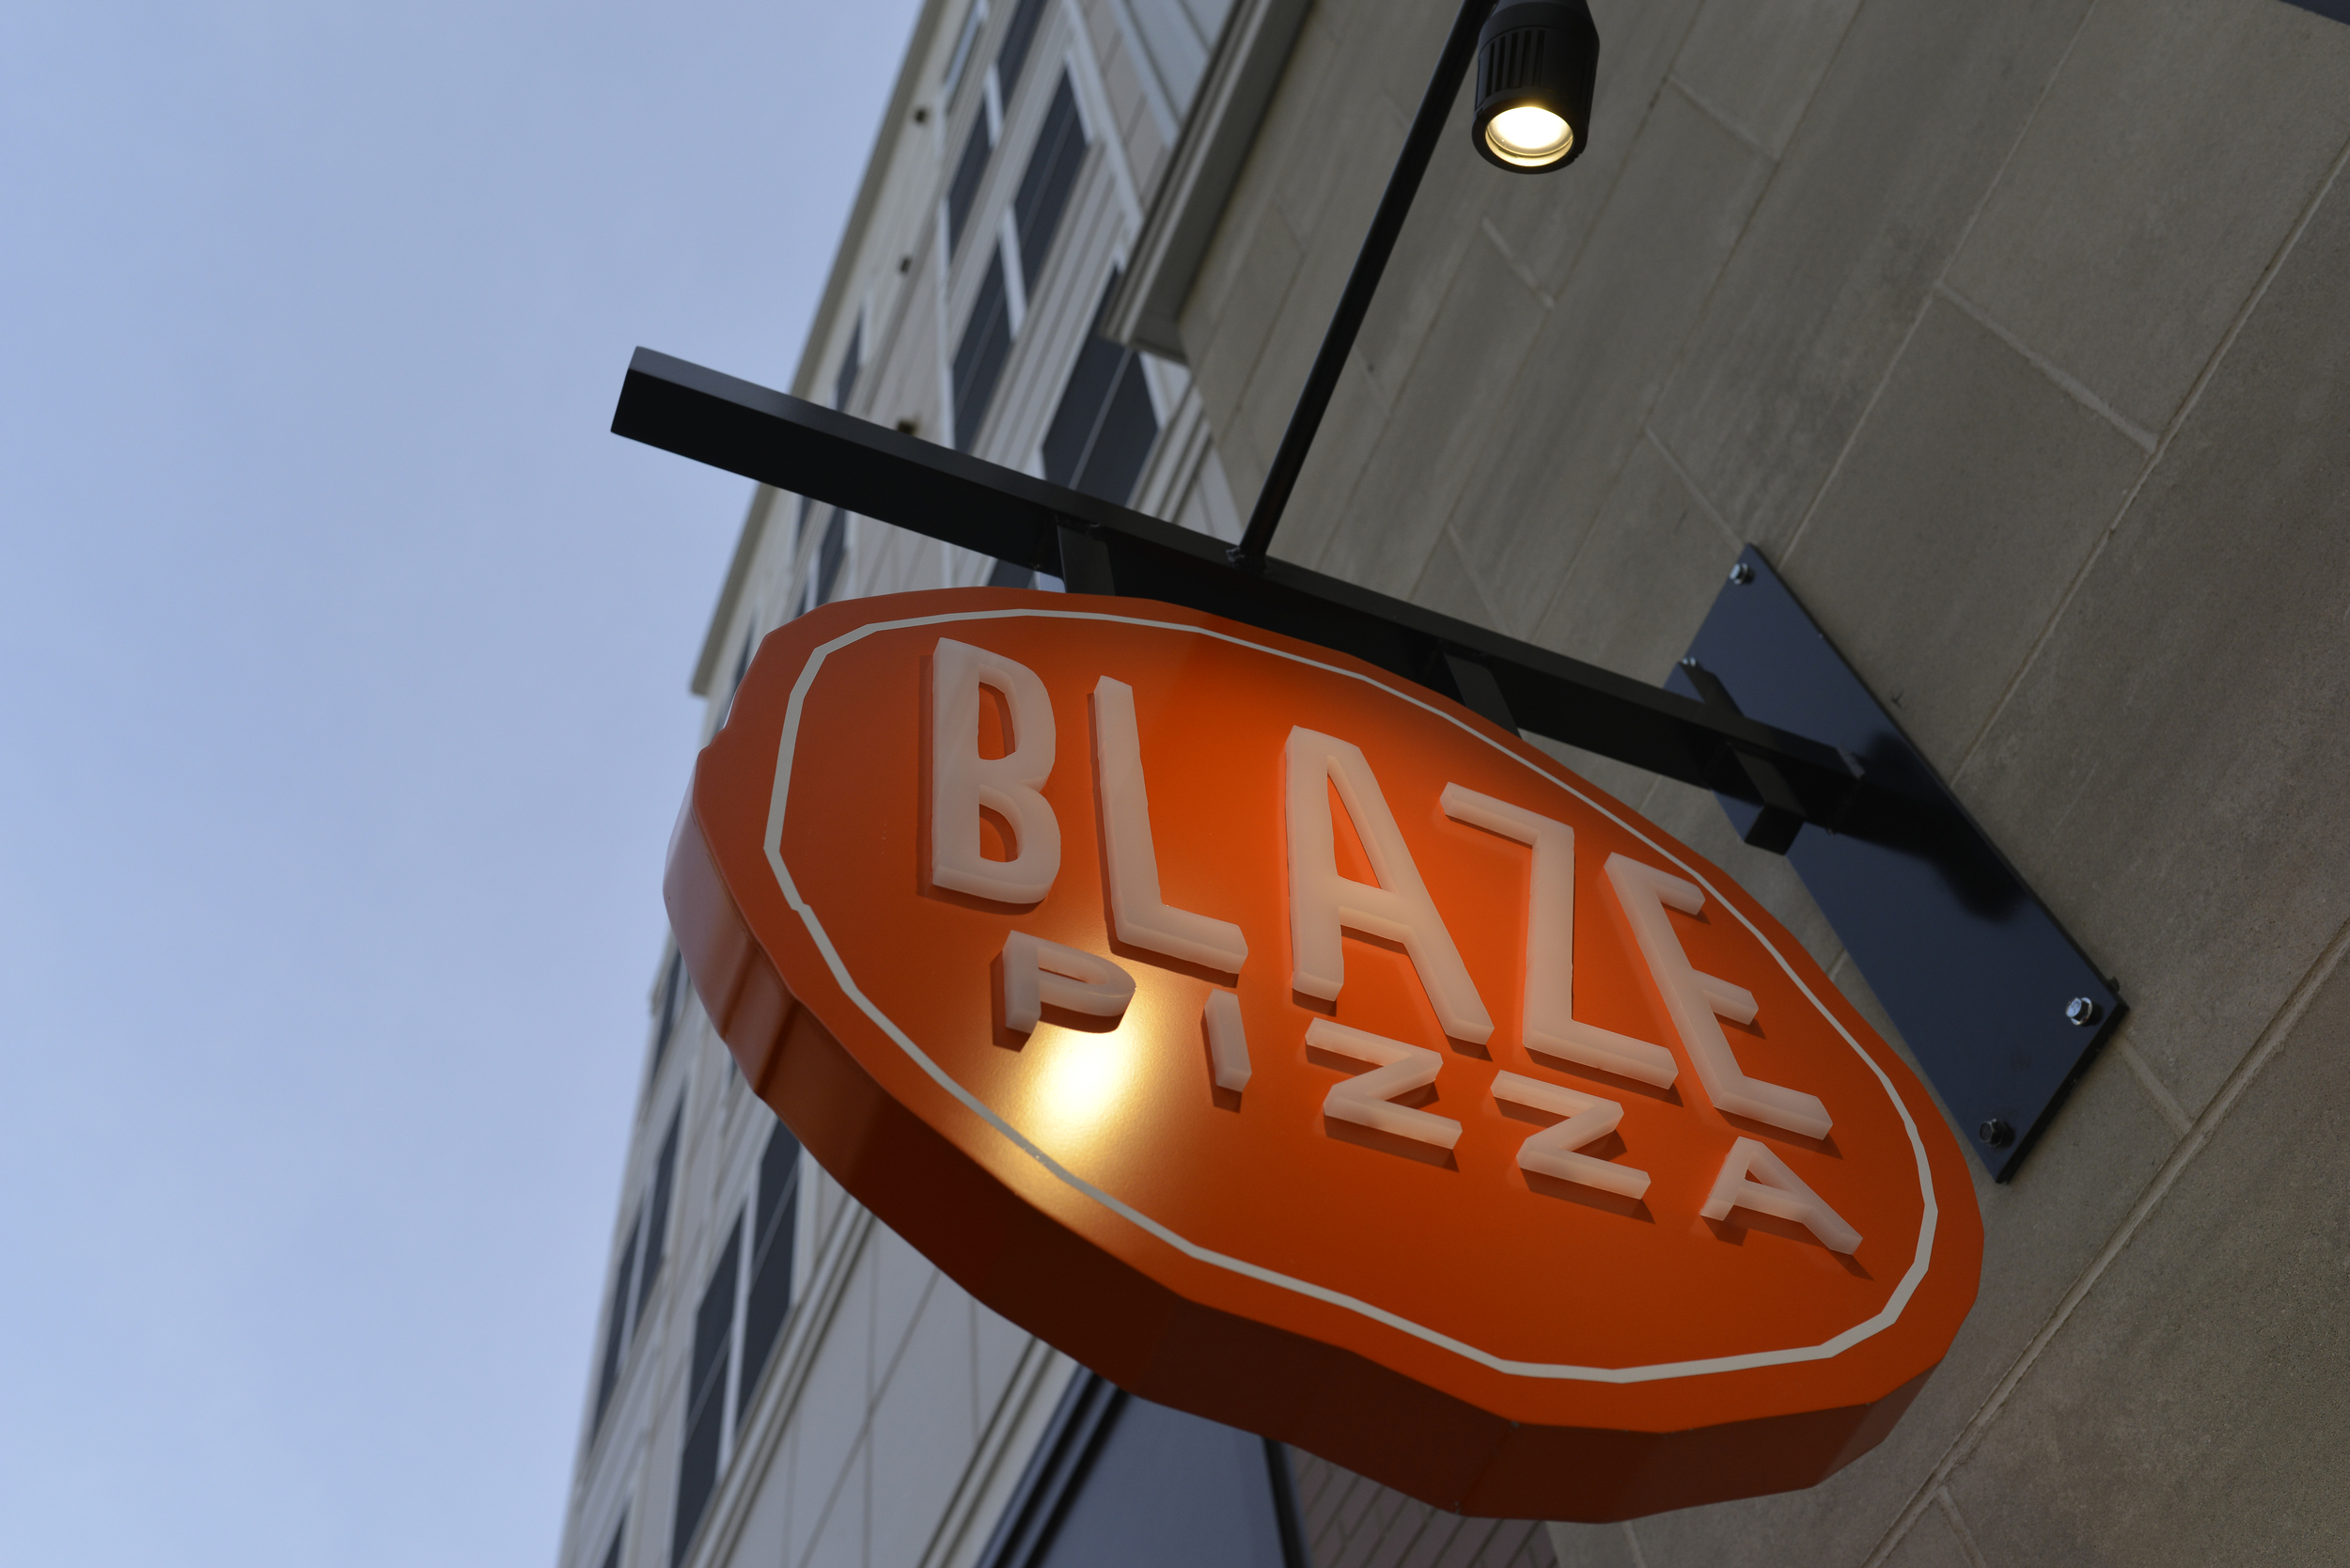 Blaze Fast Fire'd Pizza is set to open in Storrs Center on Jan. 28 and is offering free pizza to its social media followers in celebration. (Jason Jiang/The Daily Campus)